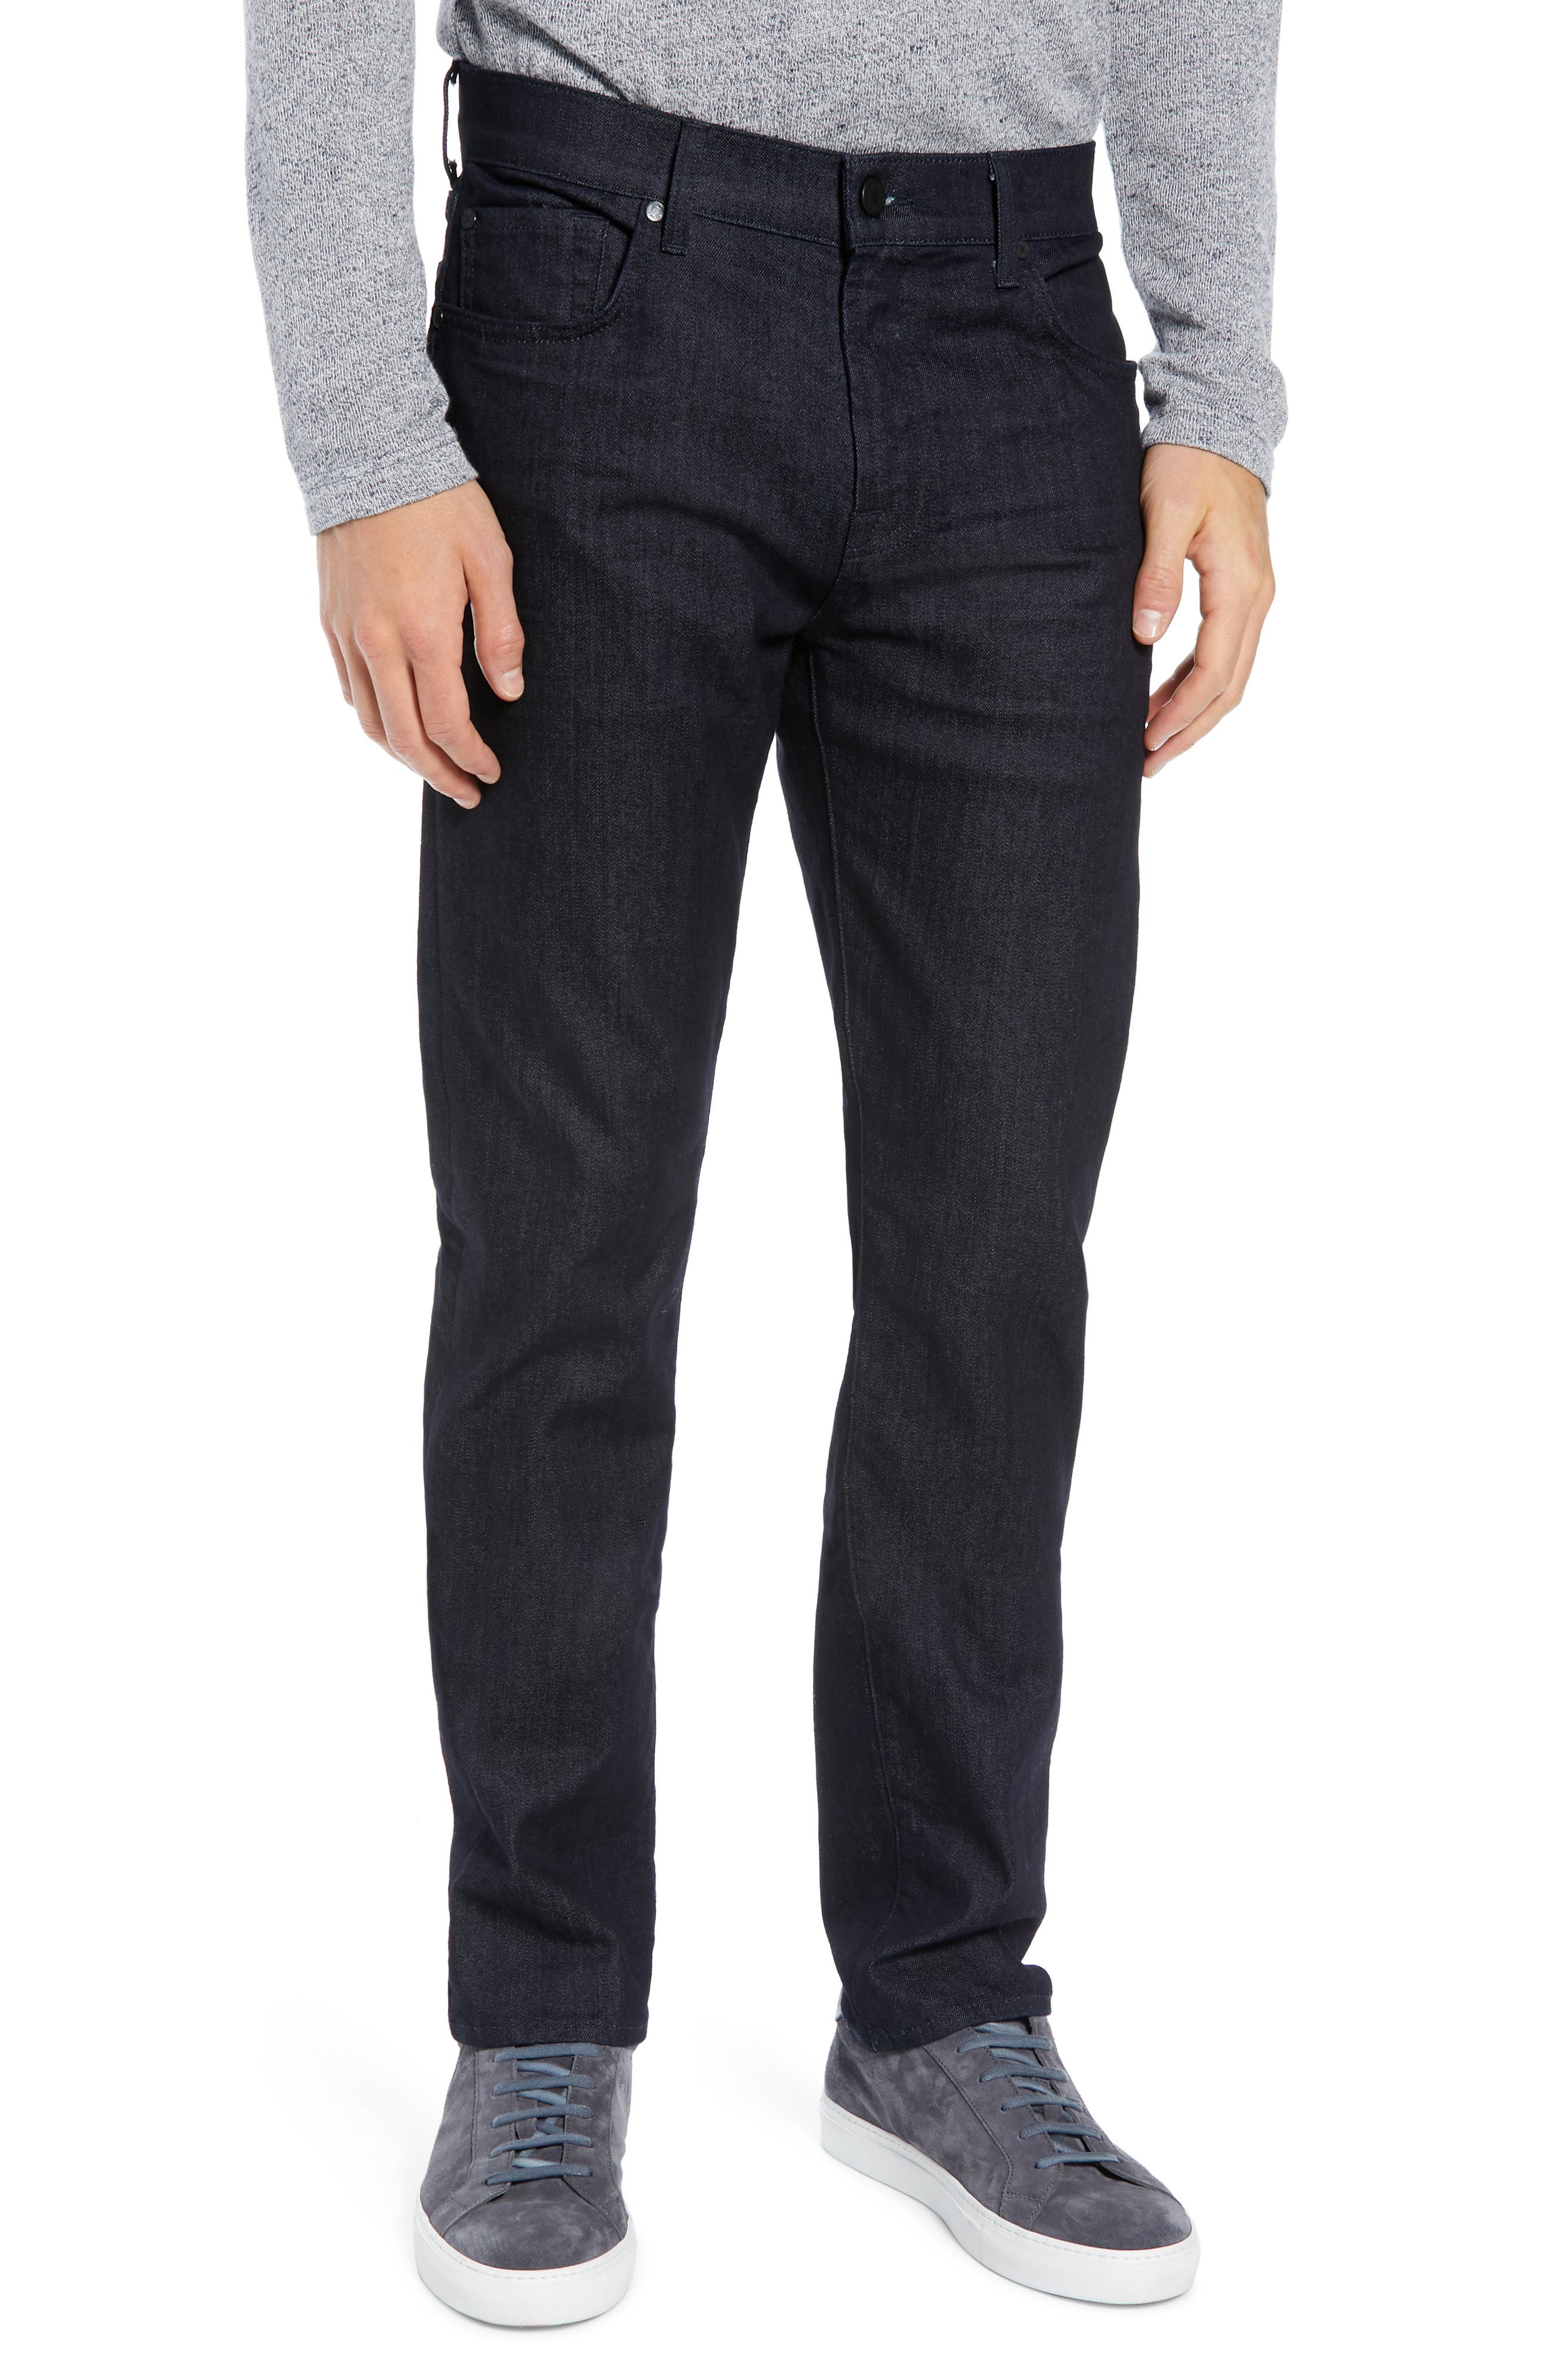 7 FOR ALL MANKIND<SUP>®</SUP>, Adrien Slim Fit Jeans, Main thumbnail 1, color, EXECUTIVE